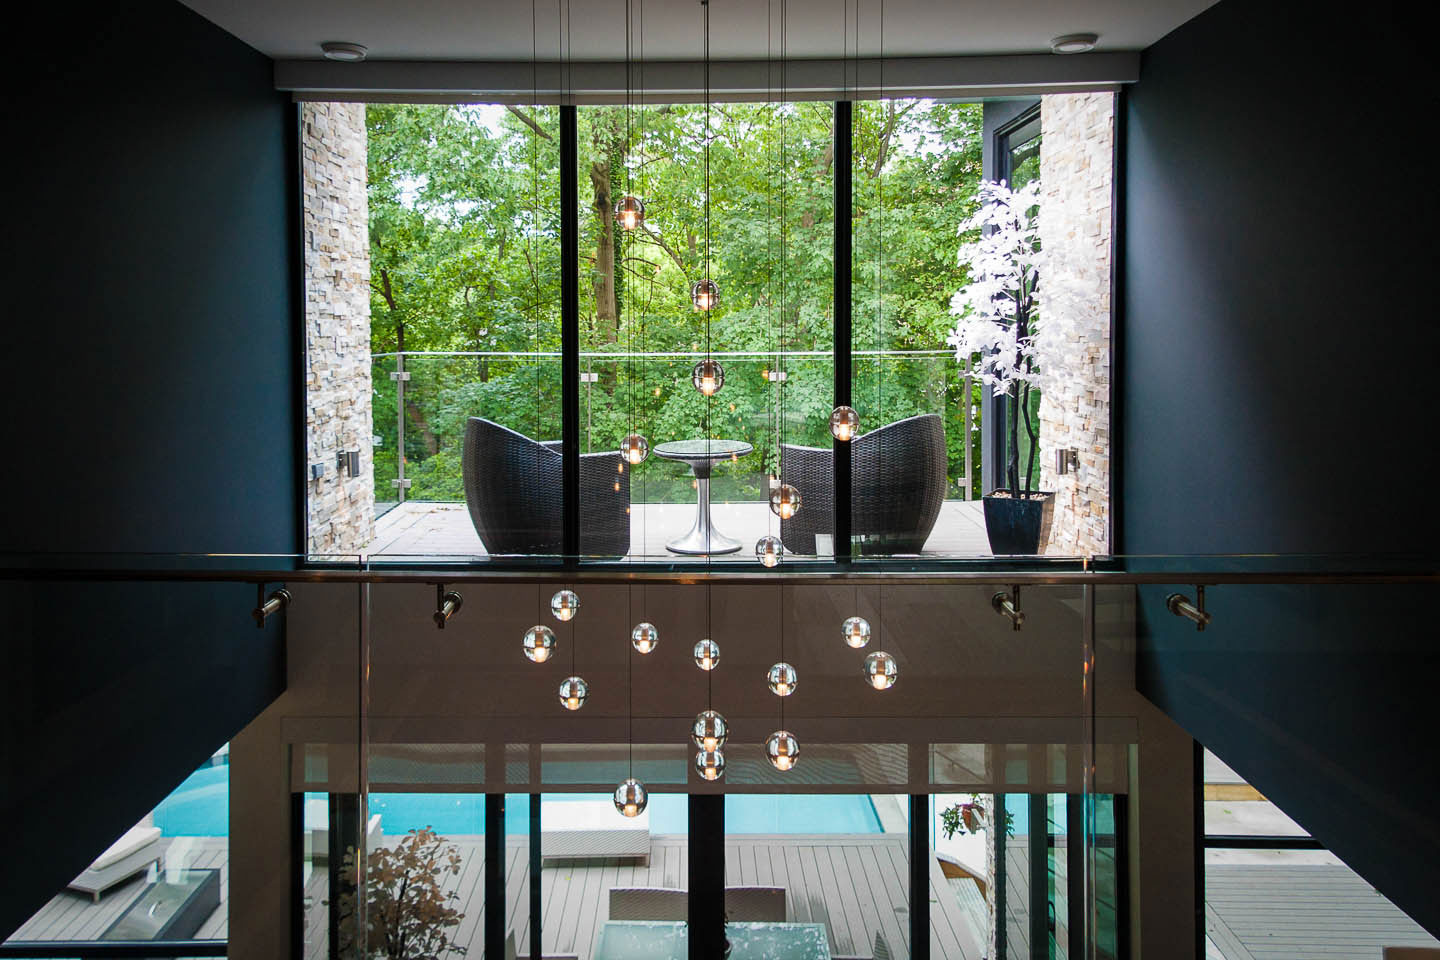 Pendant Lighting, Balcony, Contemporary House in Toronto, Canada